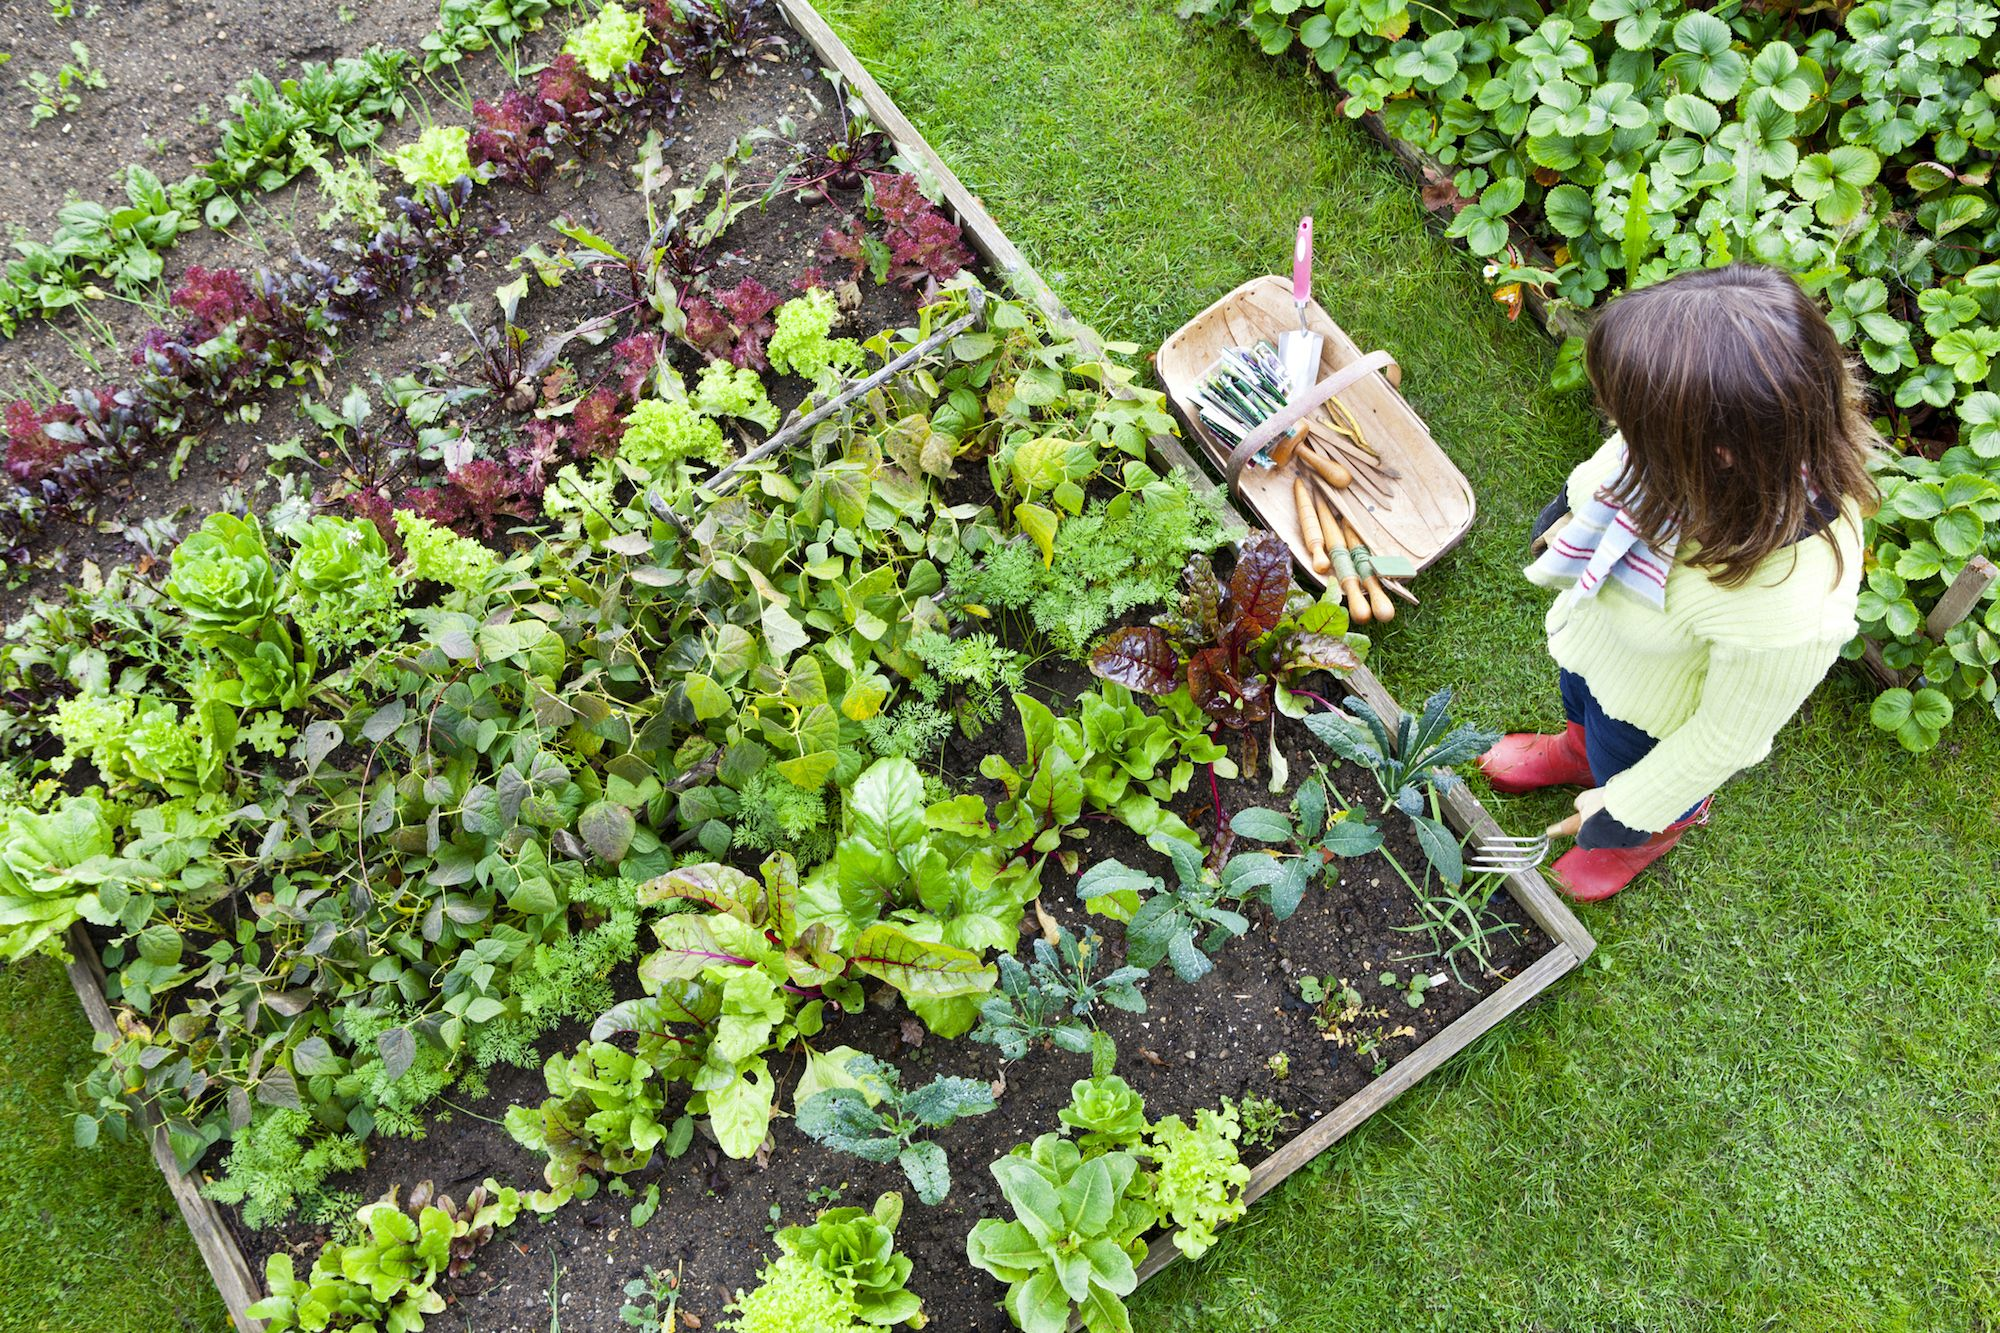 No dig gardening: Charles Dowding on why a no dig garden is better for the environment